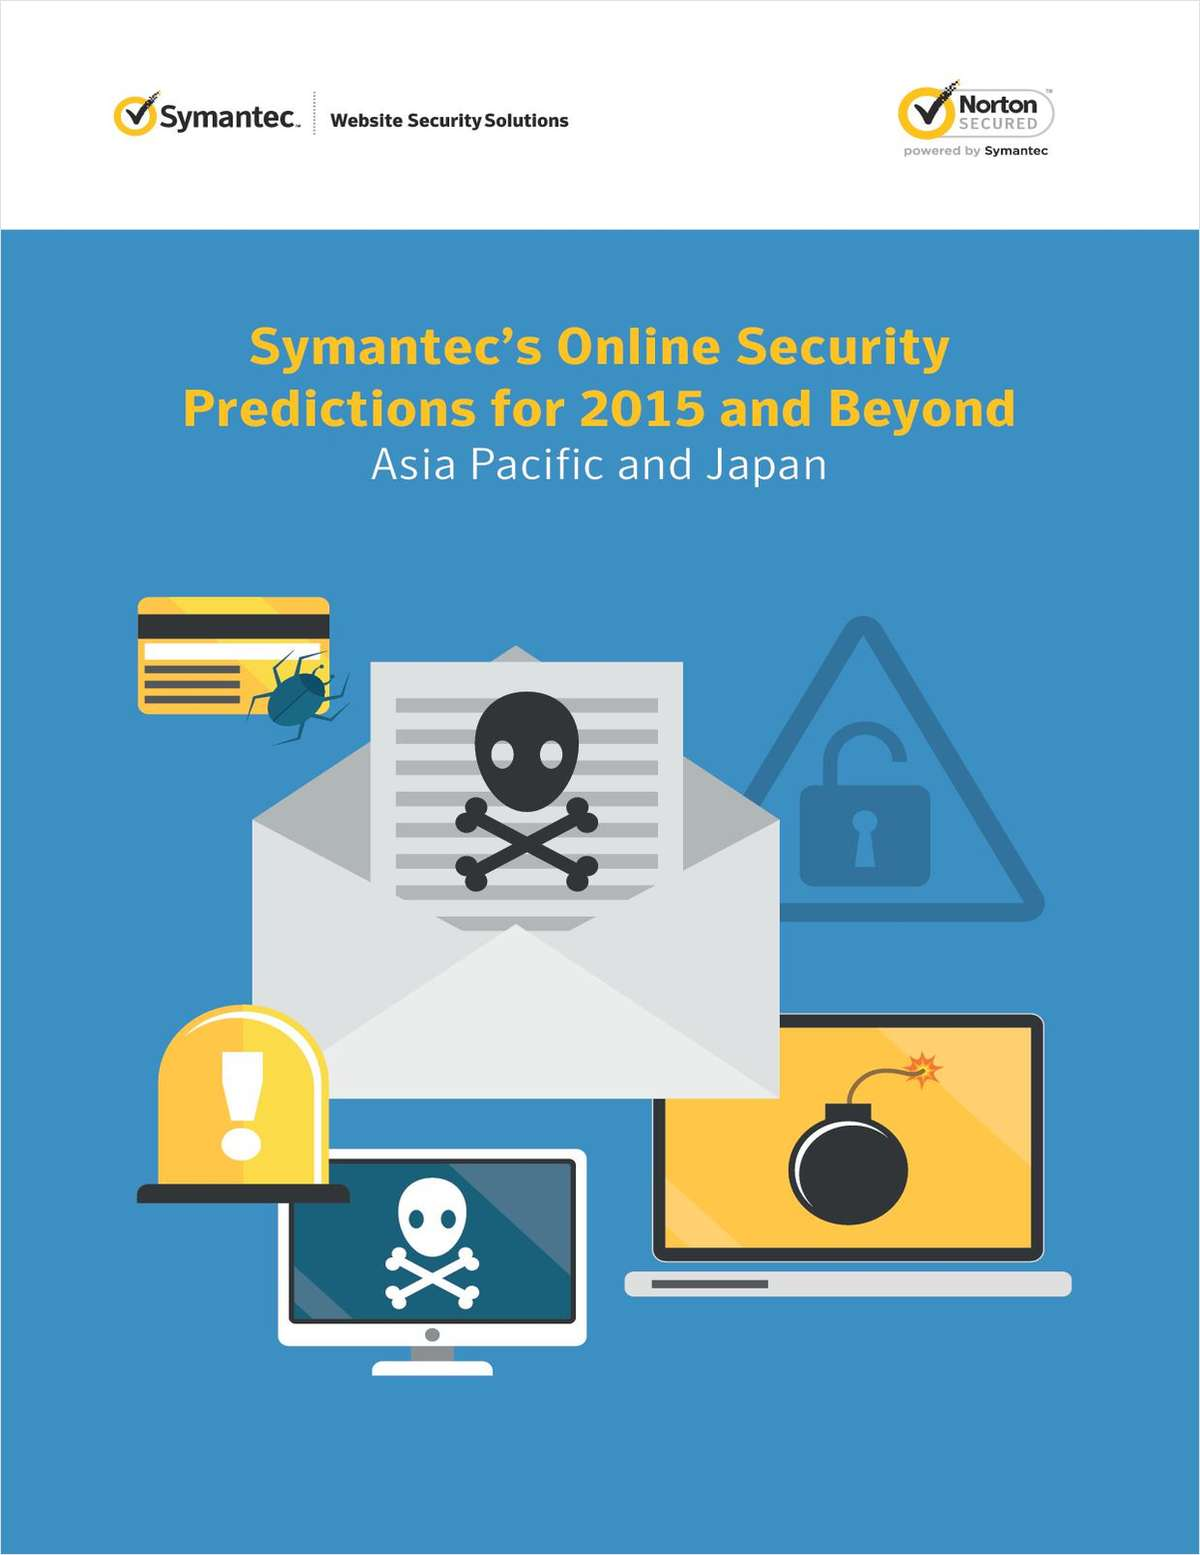 Symantec's Online Security Predictions for 2015 and Beyond: Asia Pacific and Japan